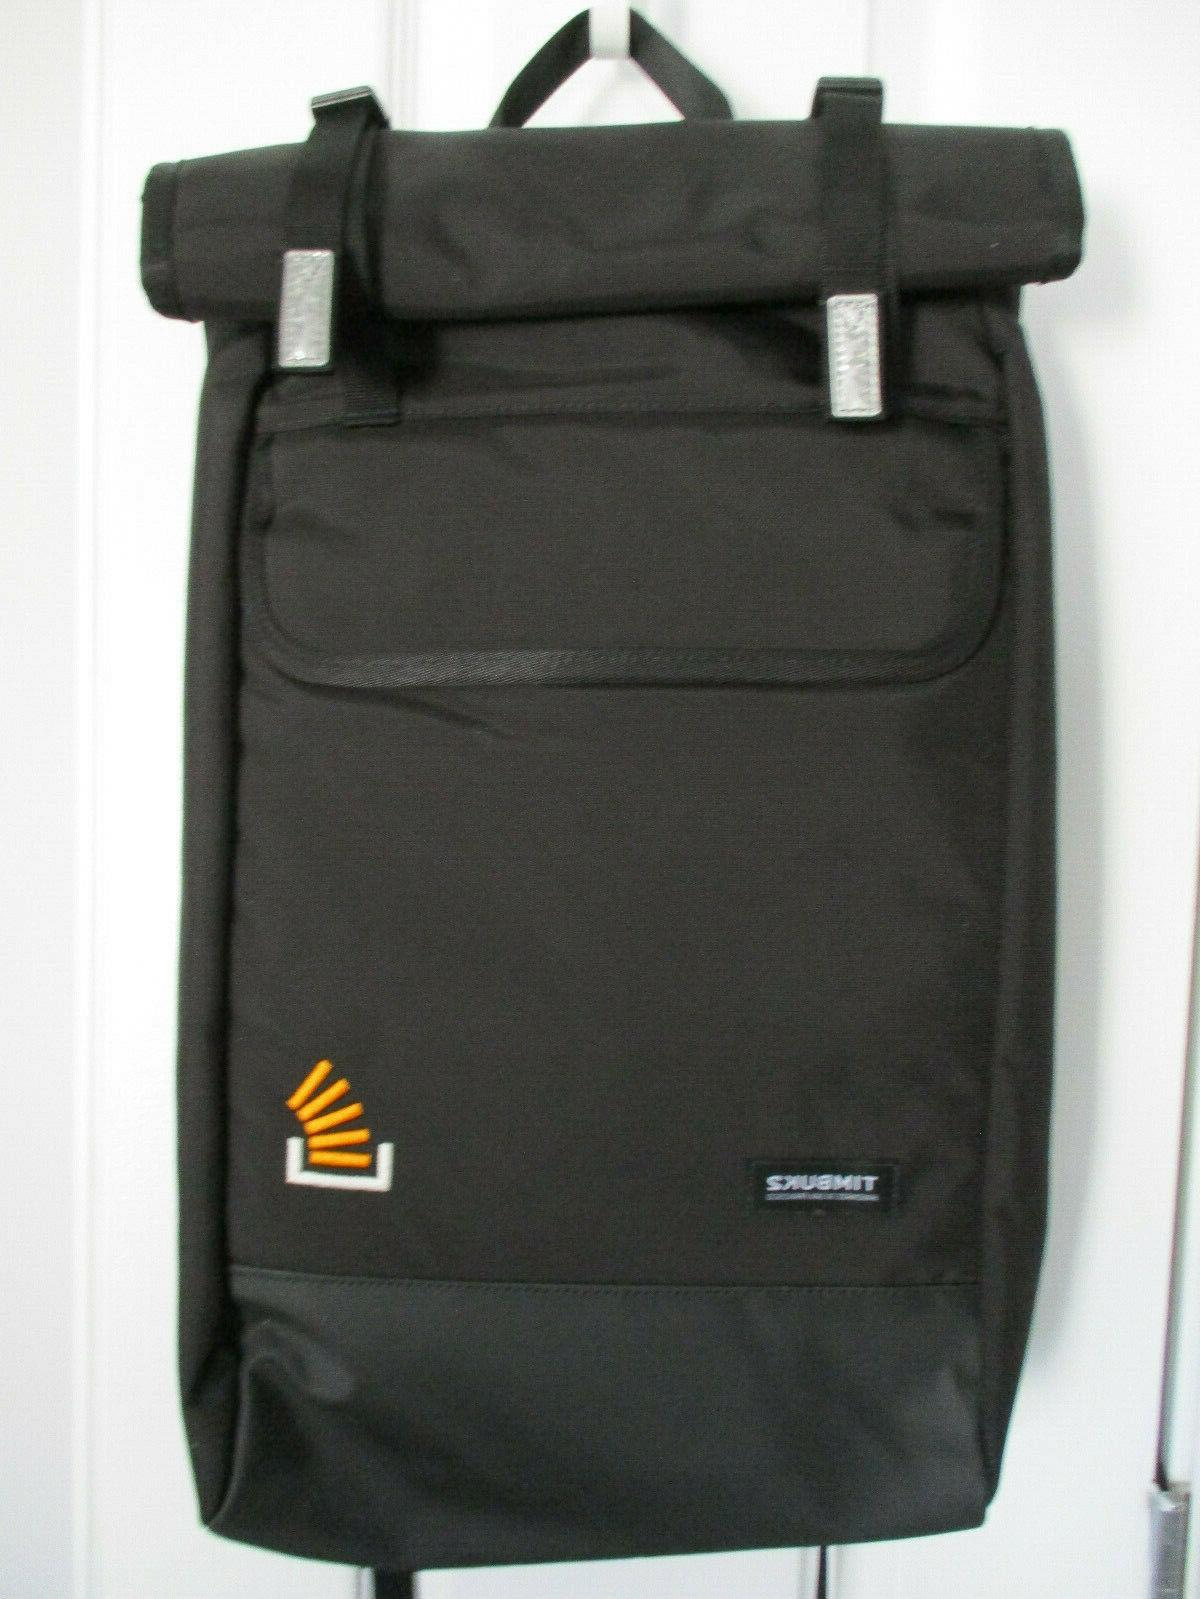 NEW Timbuk2 Roll Top Laptop Commuter Backpack Bag!